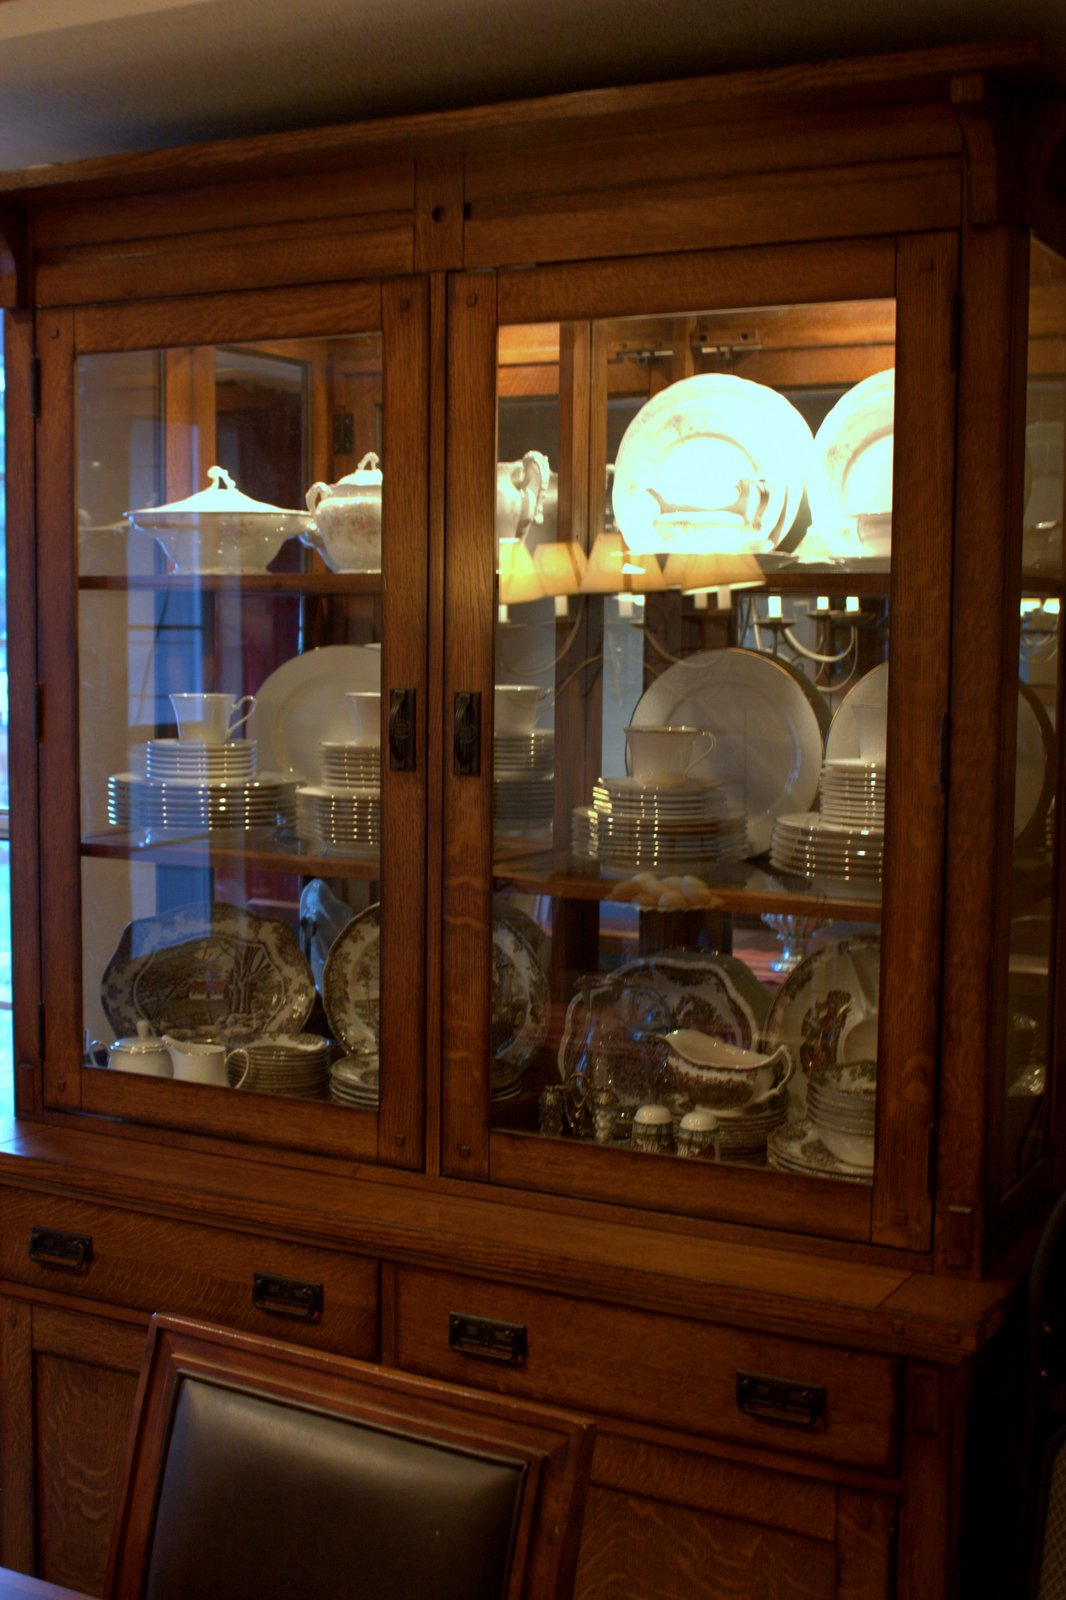 My New Dining Room Hutch Arrived Two Days Before Christmas. I Finally Have  Enough Room To Store My Dishes. My Hubby Says I Have Too Many Different  Sets Of ...